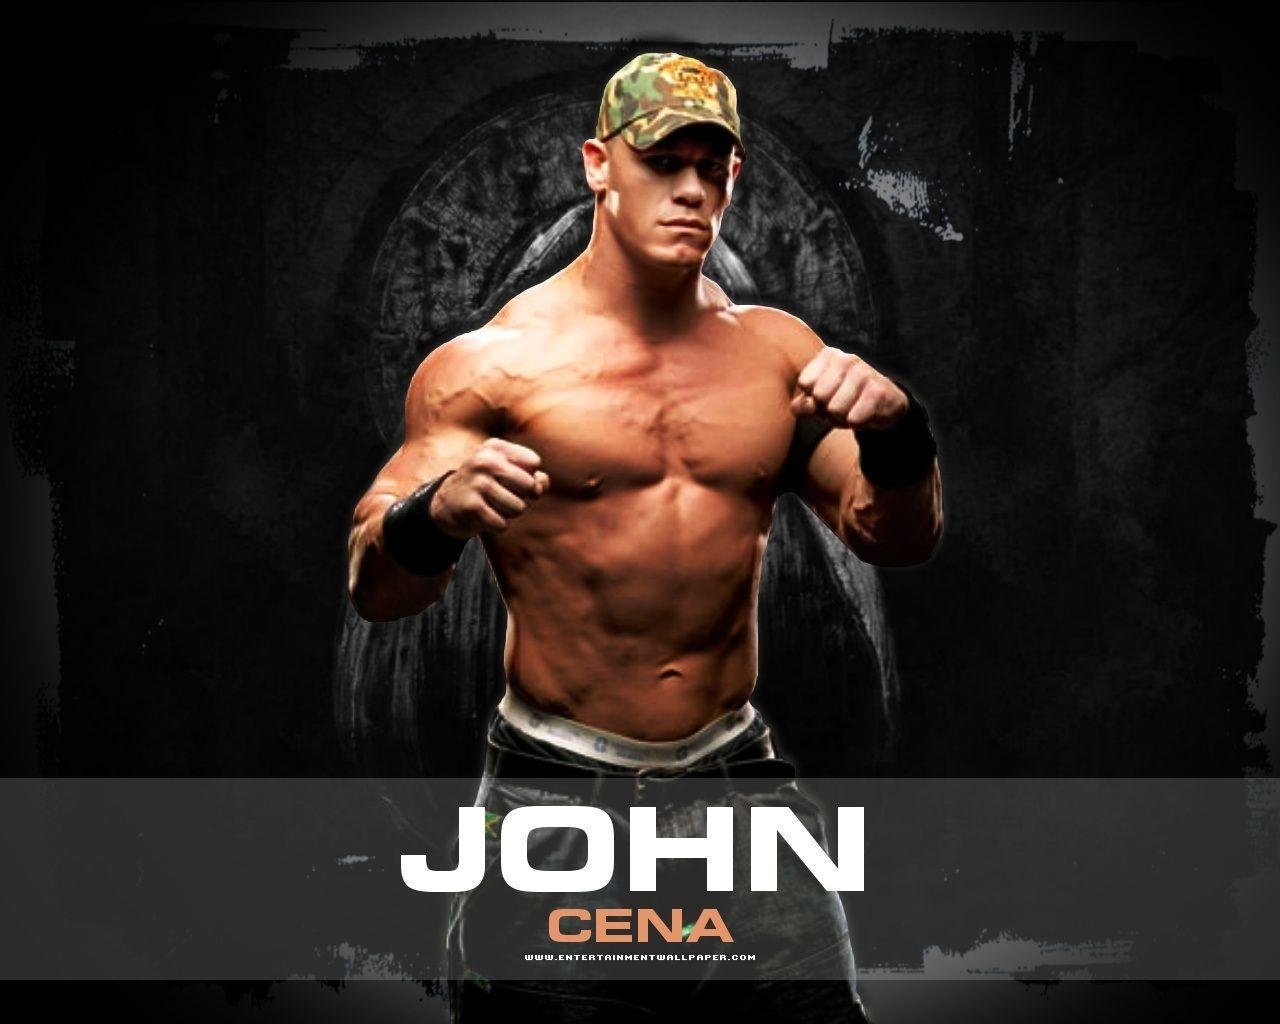 John Cena Wallpapers | Daily inspiration art photos, pictures and ...